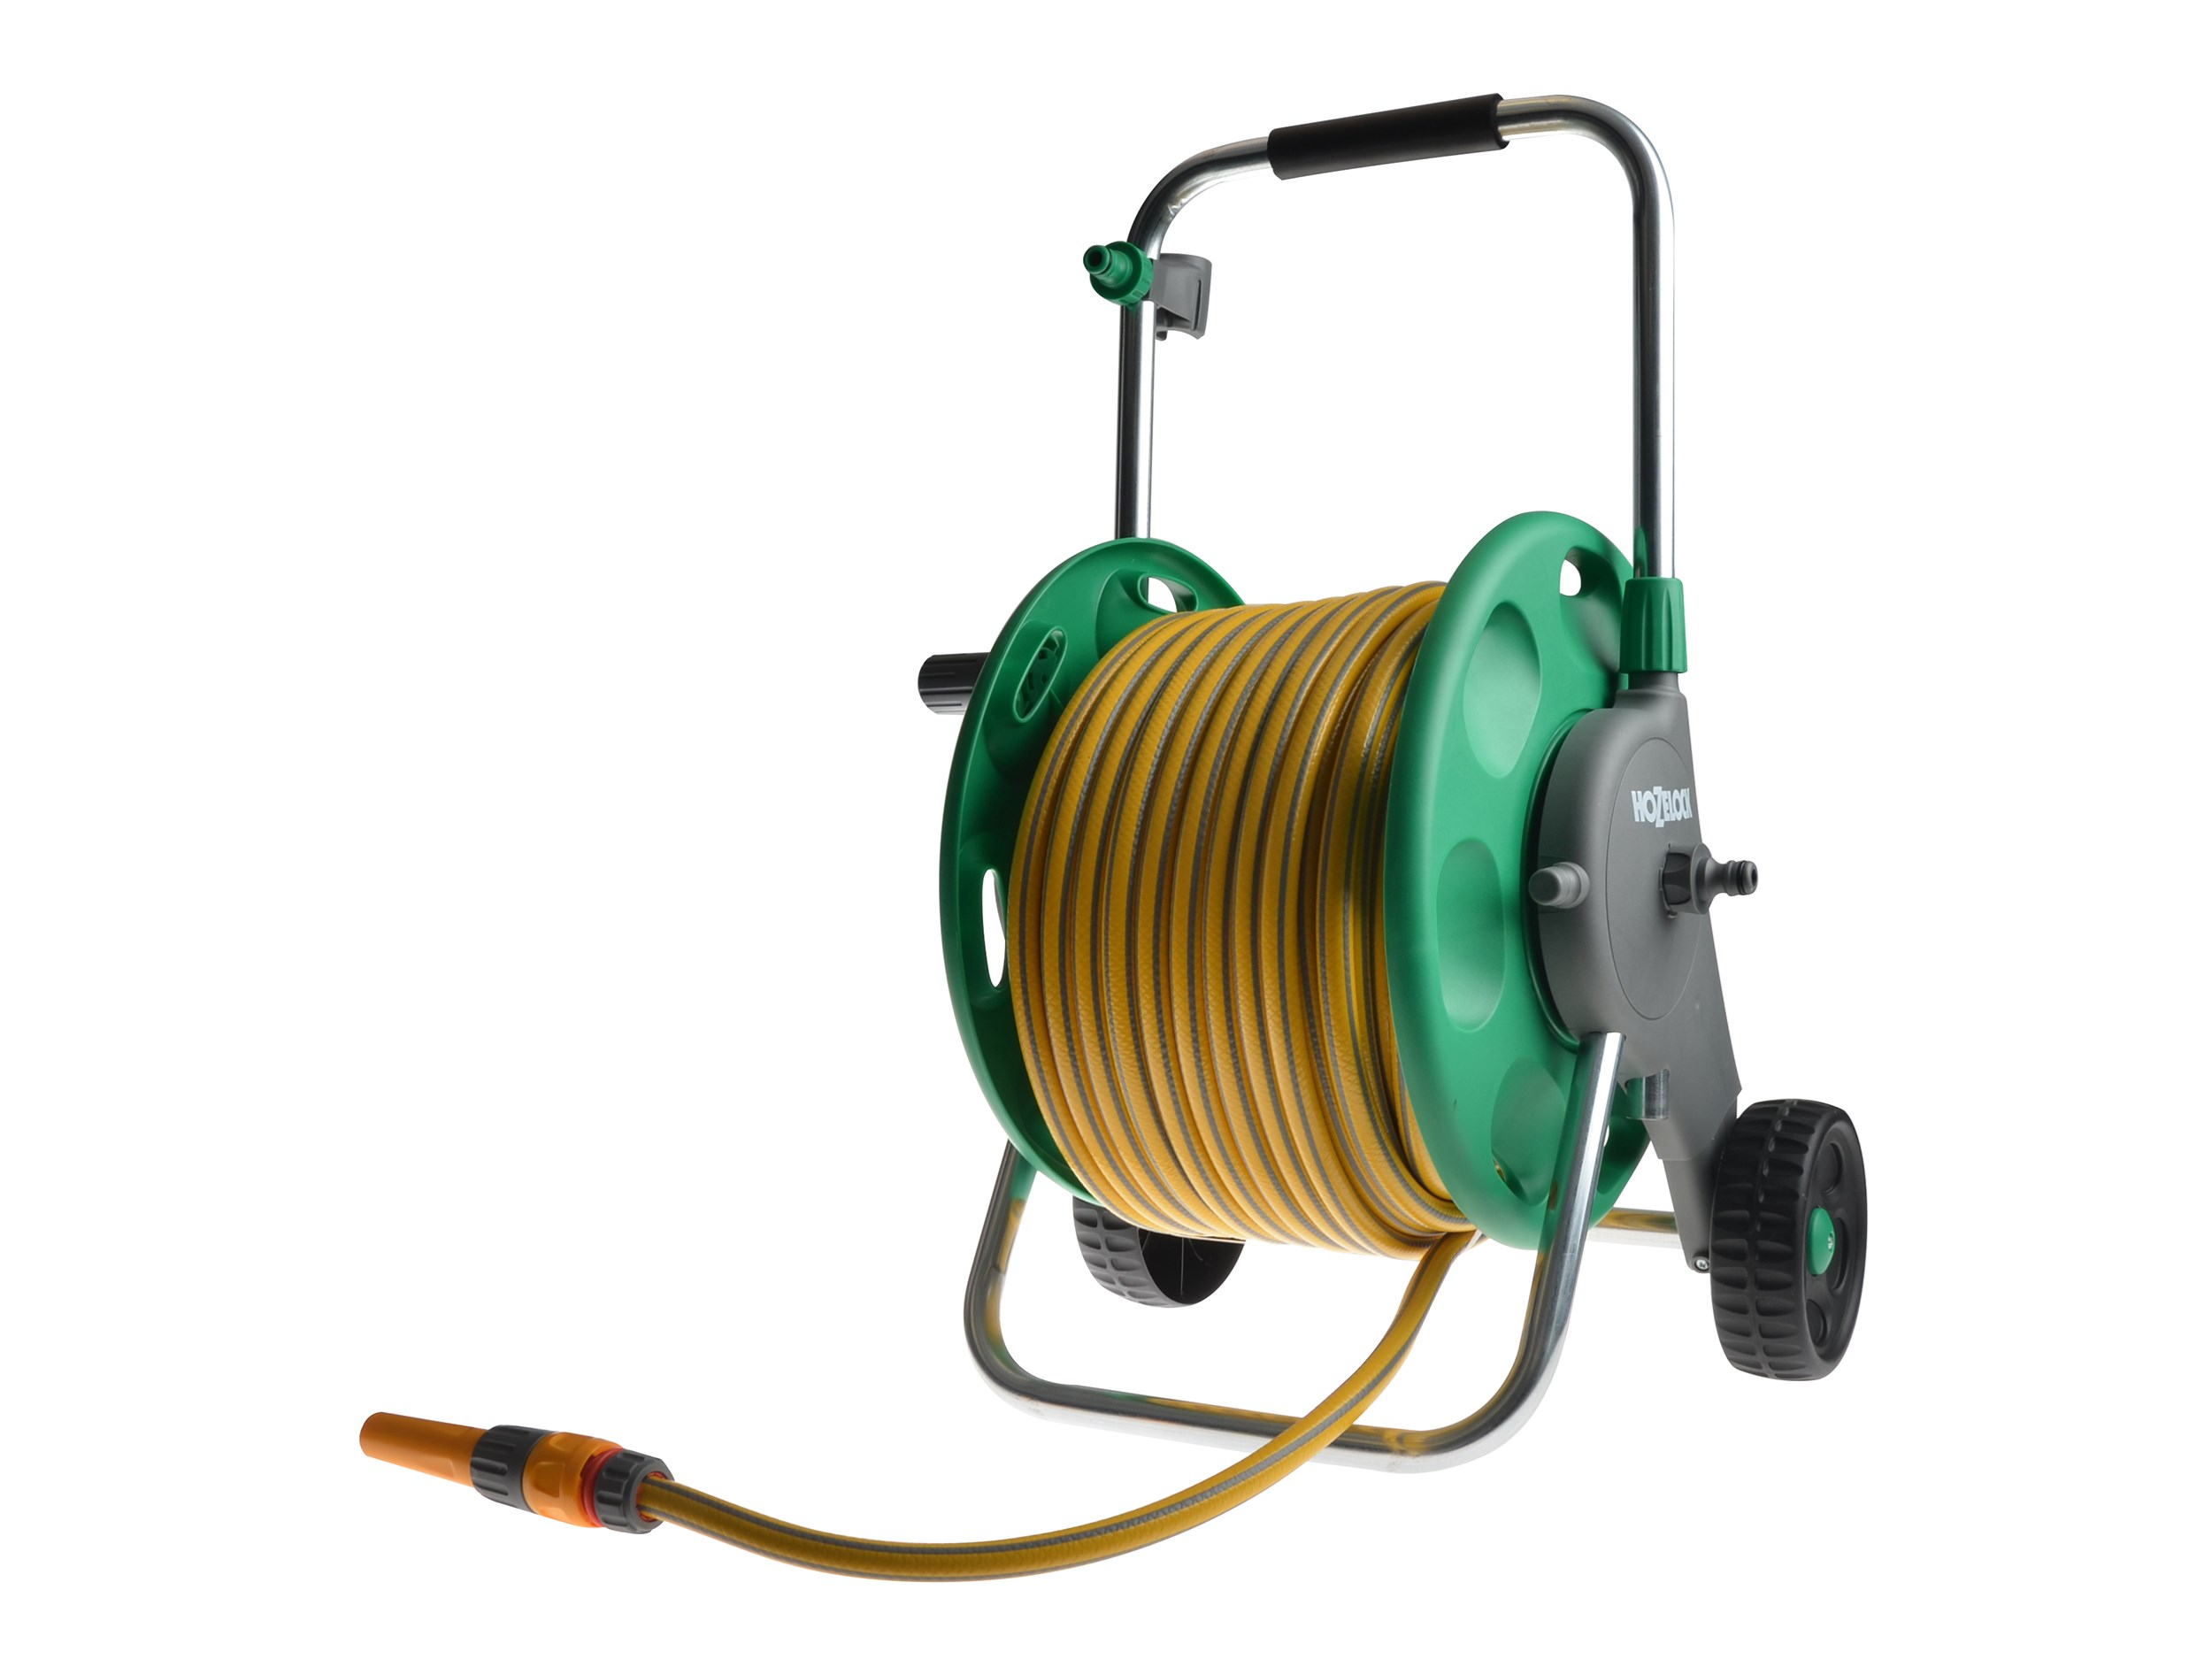 Hose Spray Nozzle >> Hozelock 2435 Assembled Hose Reel with 50 Metre Hose ...